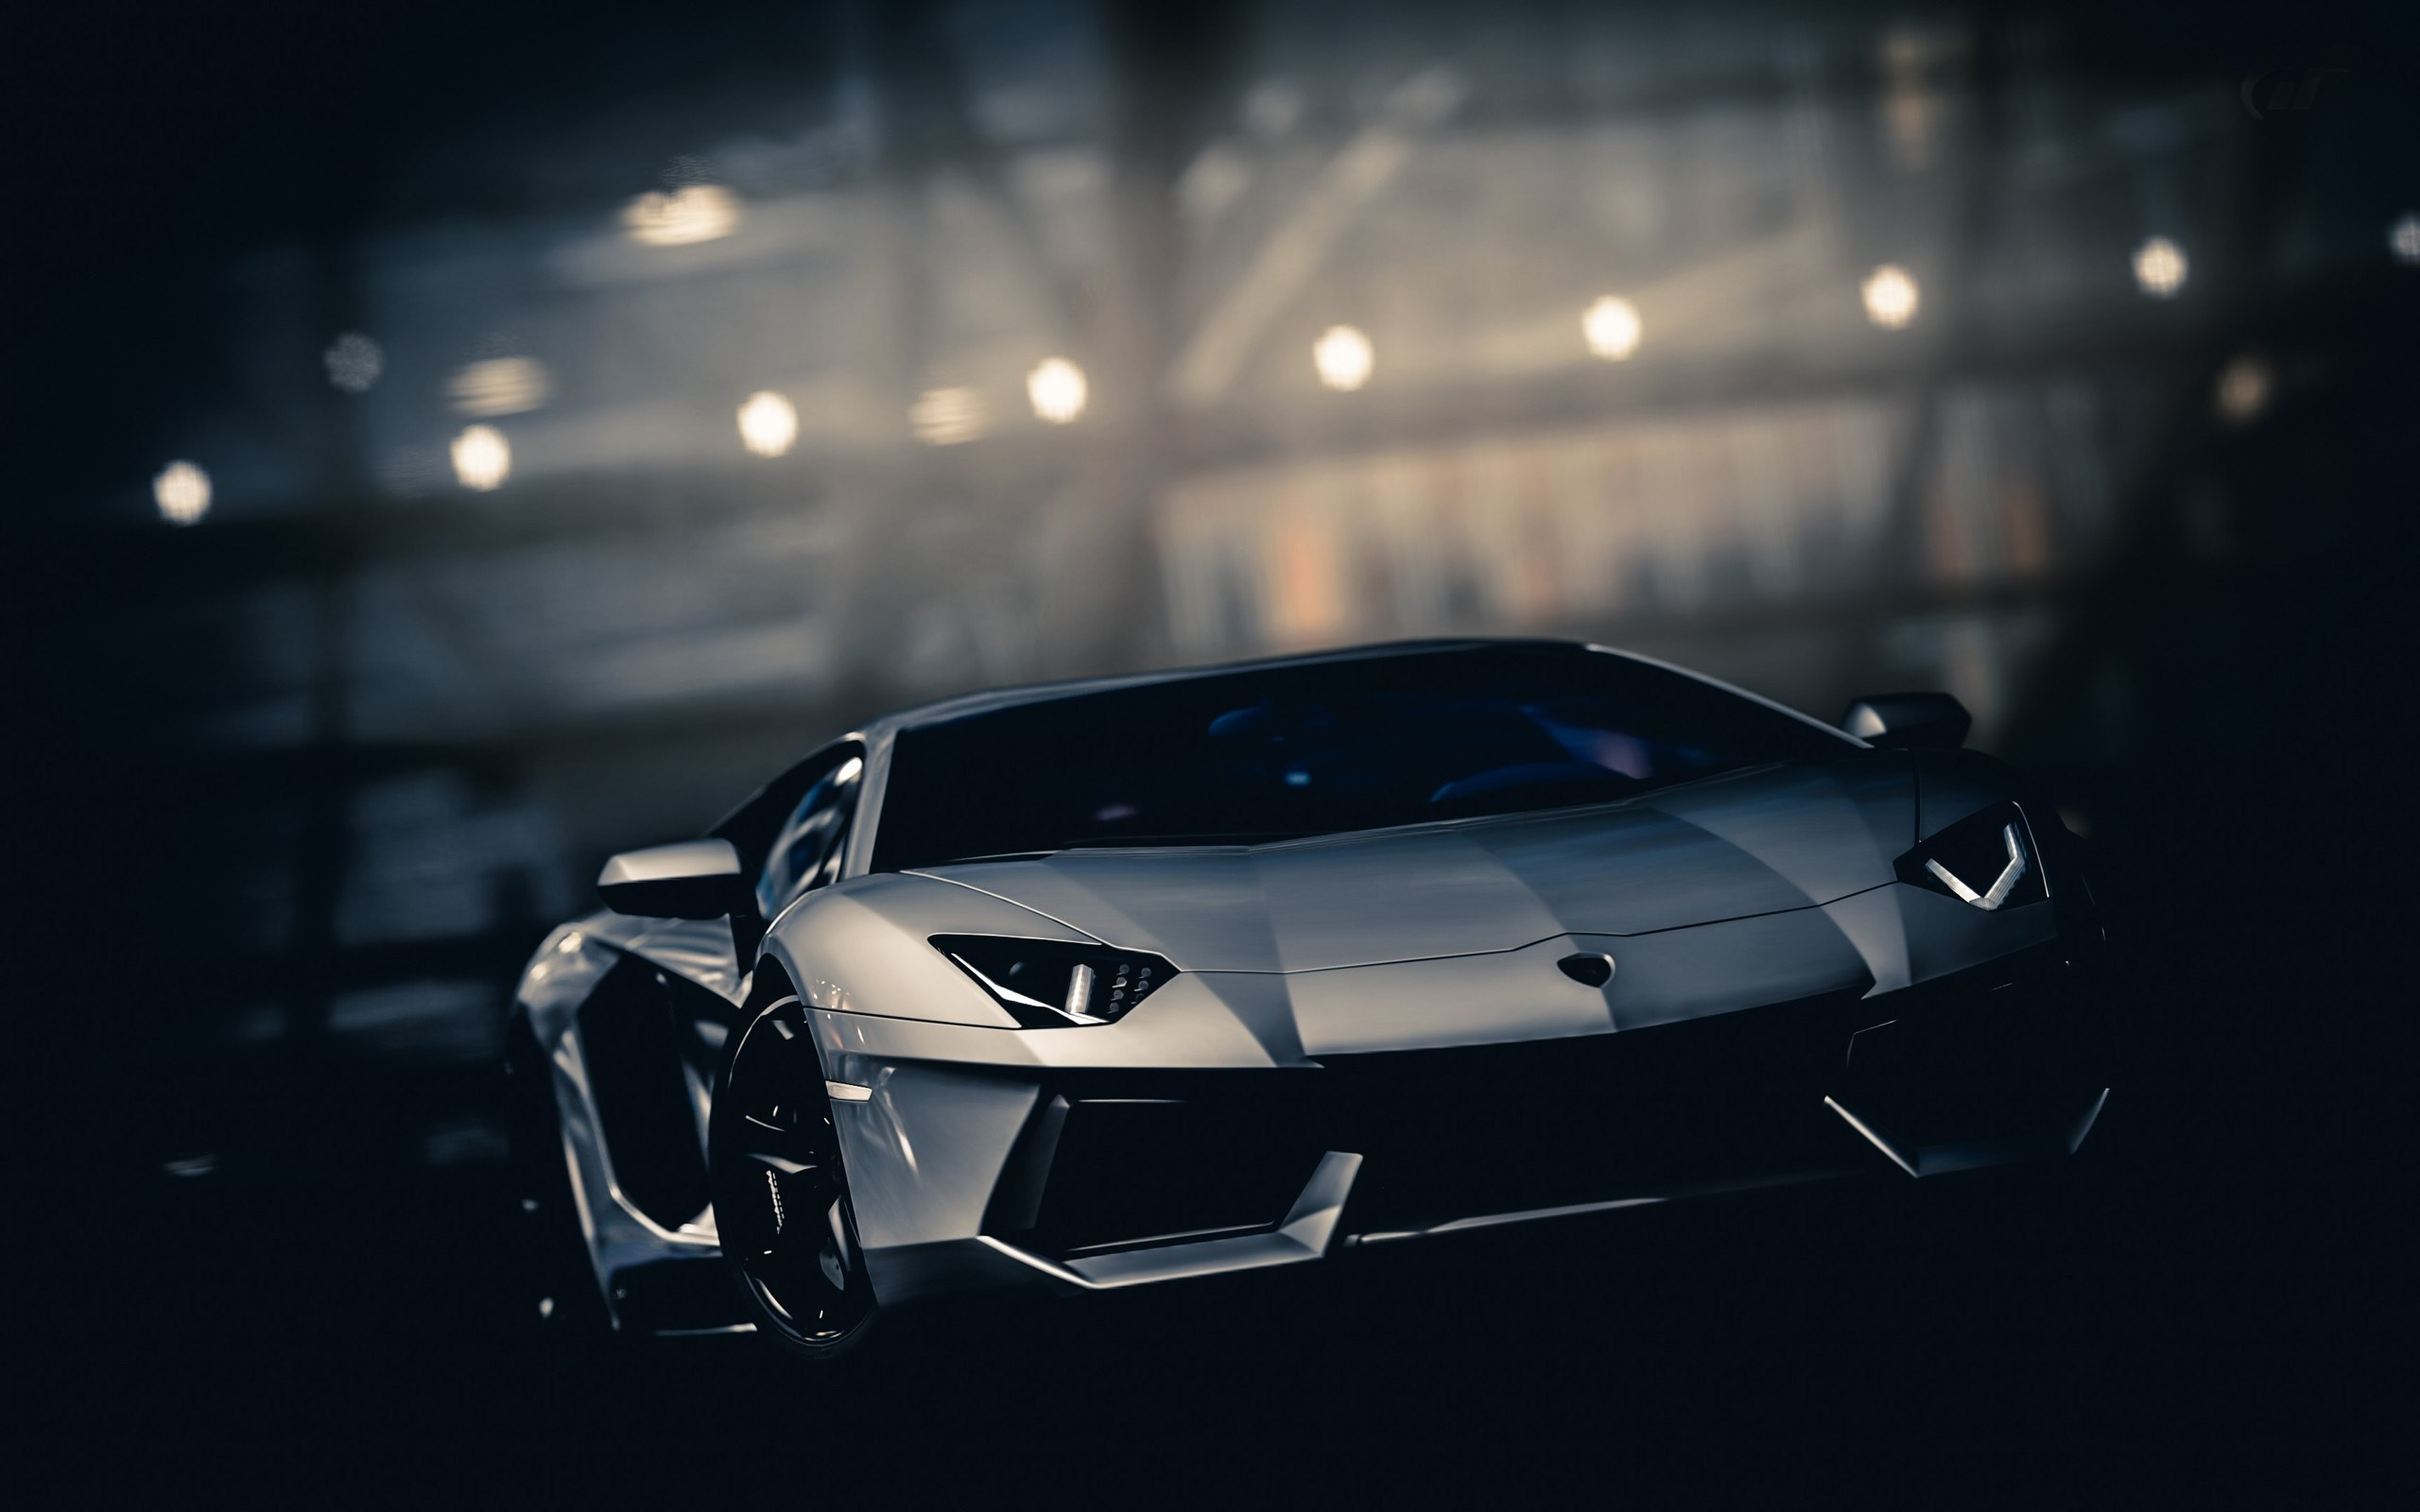 Lamborghini Aventador Wallpapers HD A12 Grey - lamborghini aventador desktop sports cars, race cars, luxury cars, expensive cars, wallpapers pictures images free download